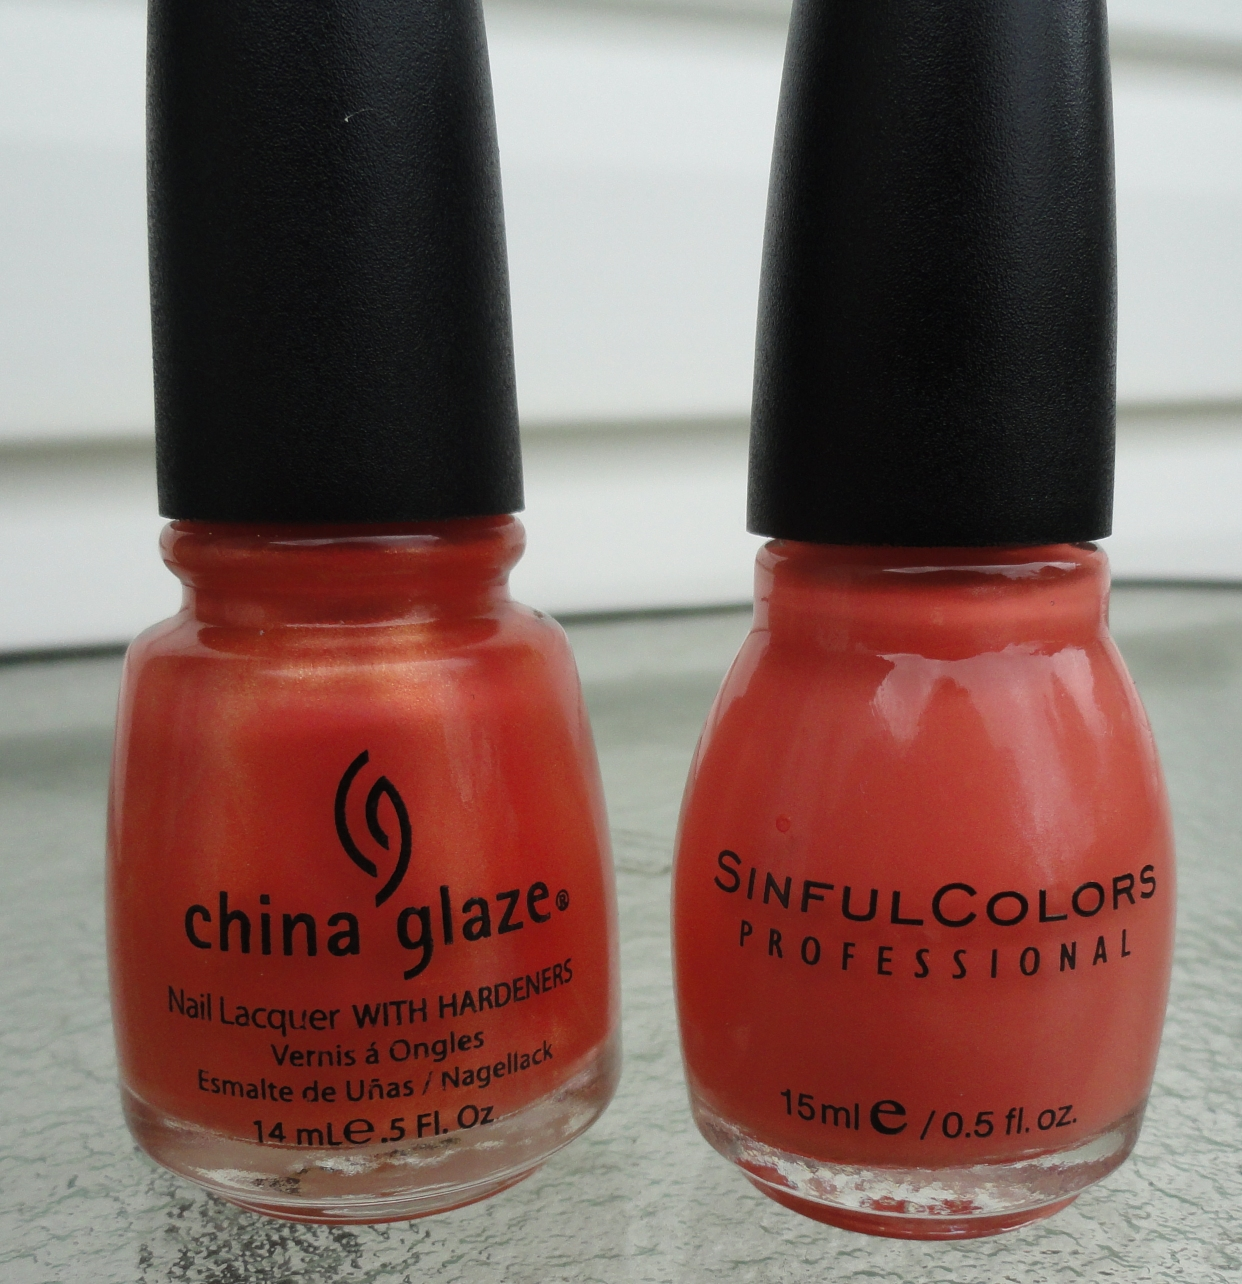 Elemental Styles China Glaze Vs Sinful Colors Blues And Peaches